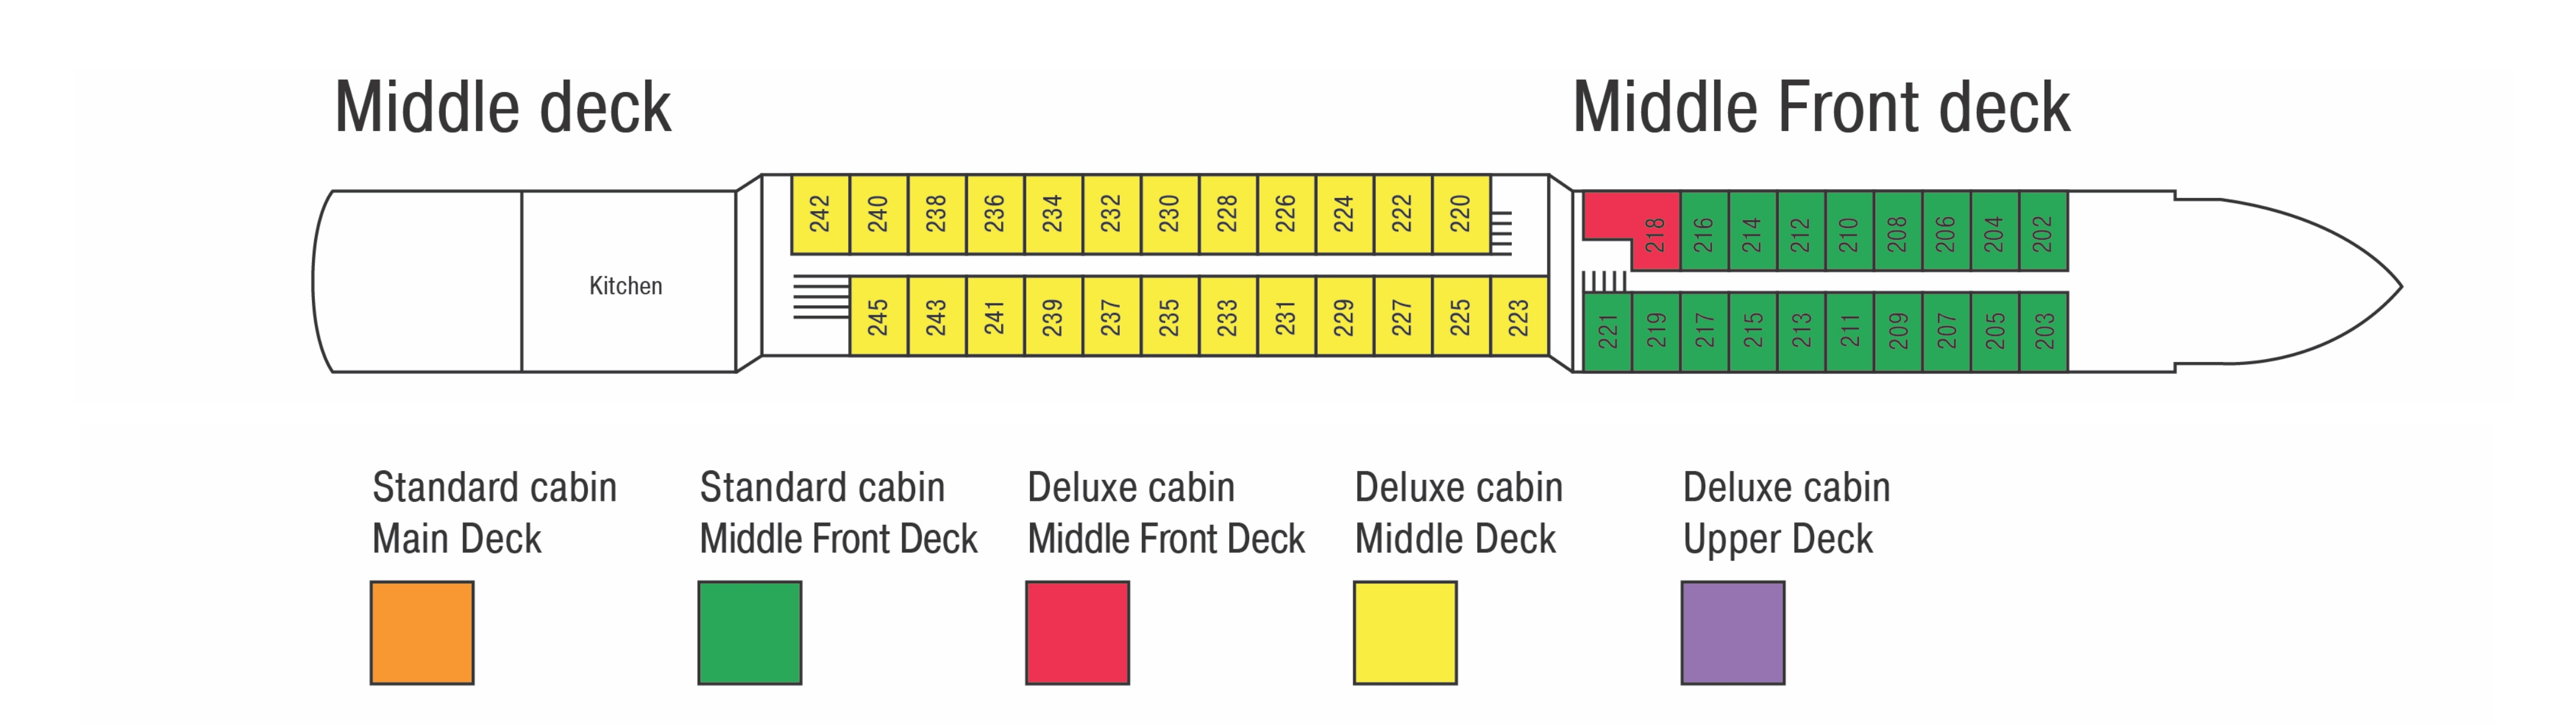 MS Crucestar, Middle Deck